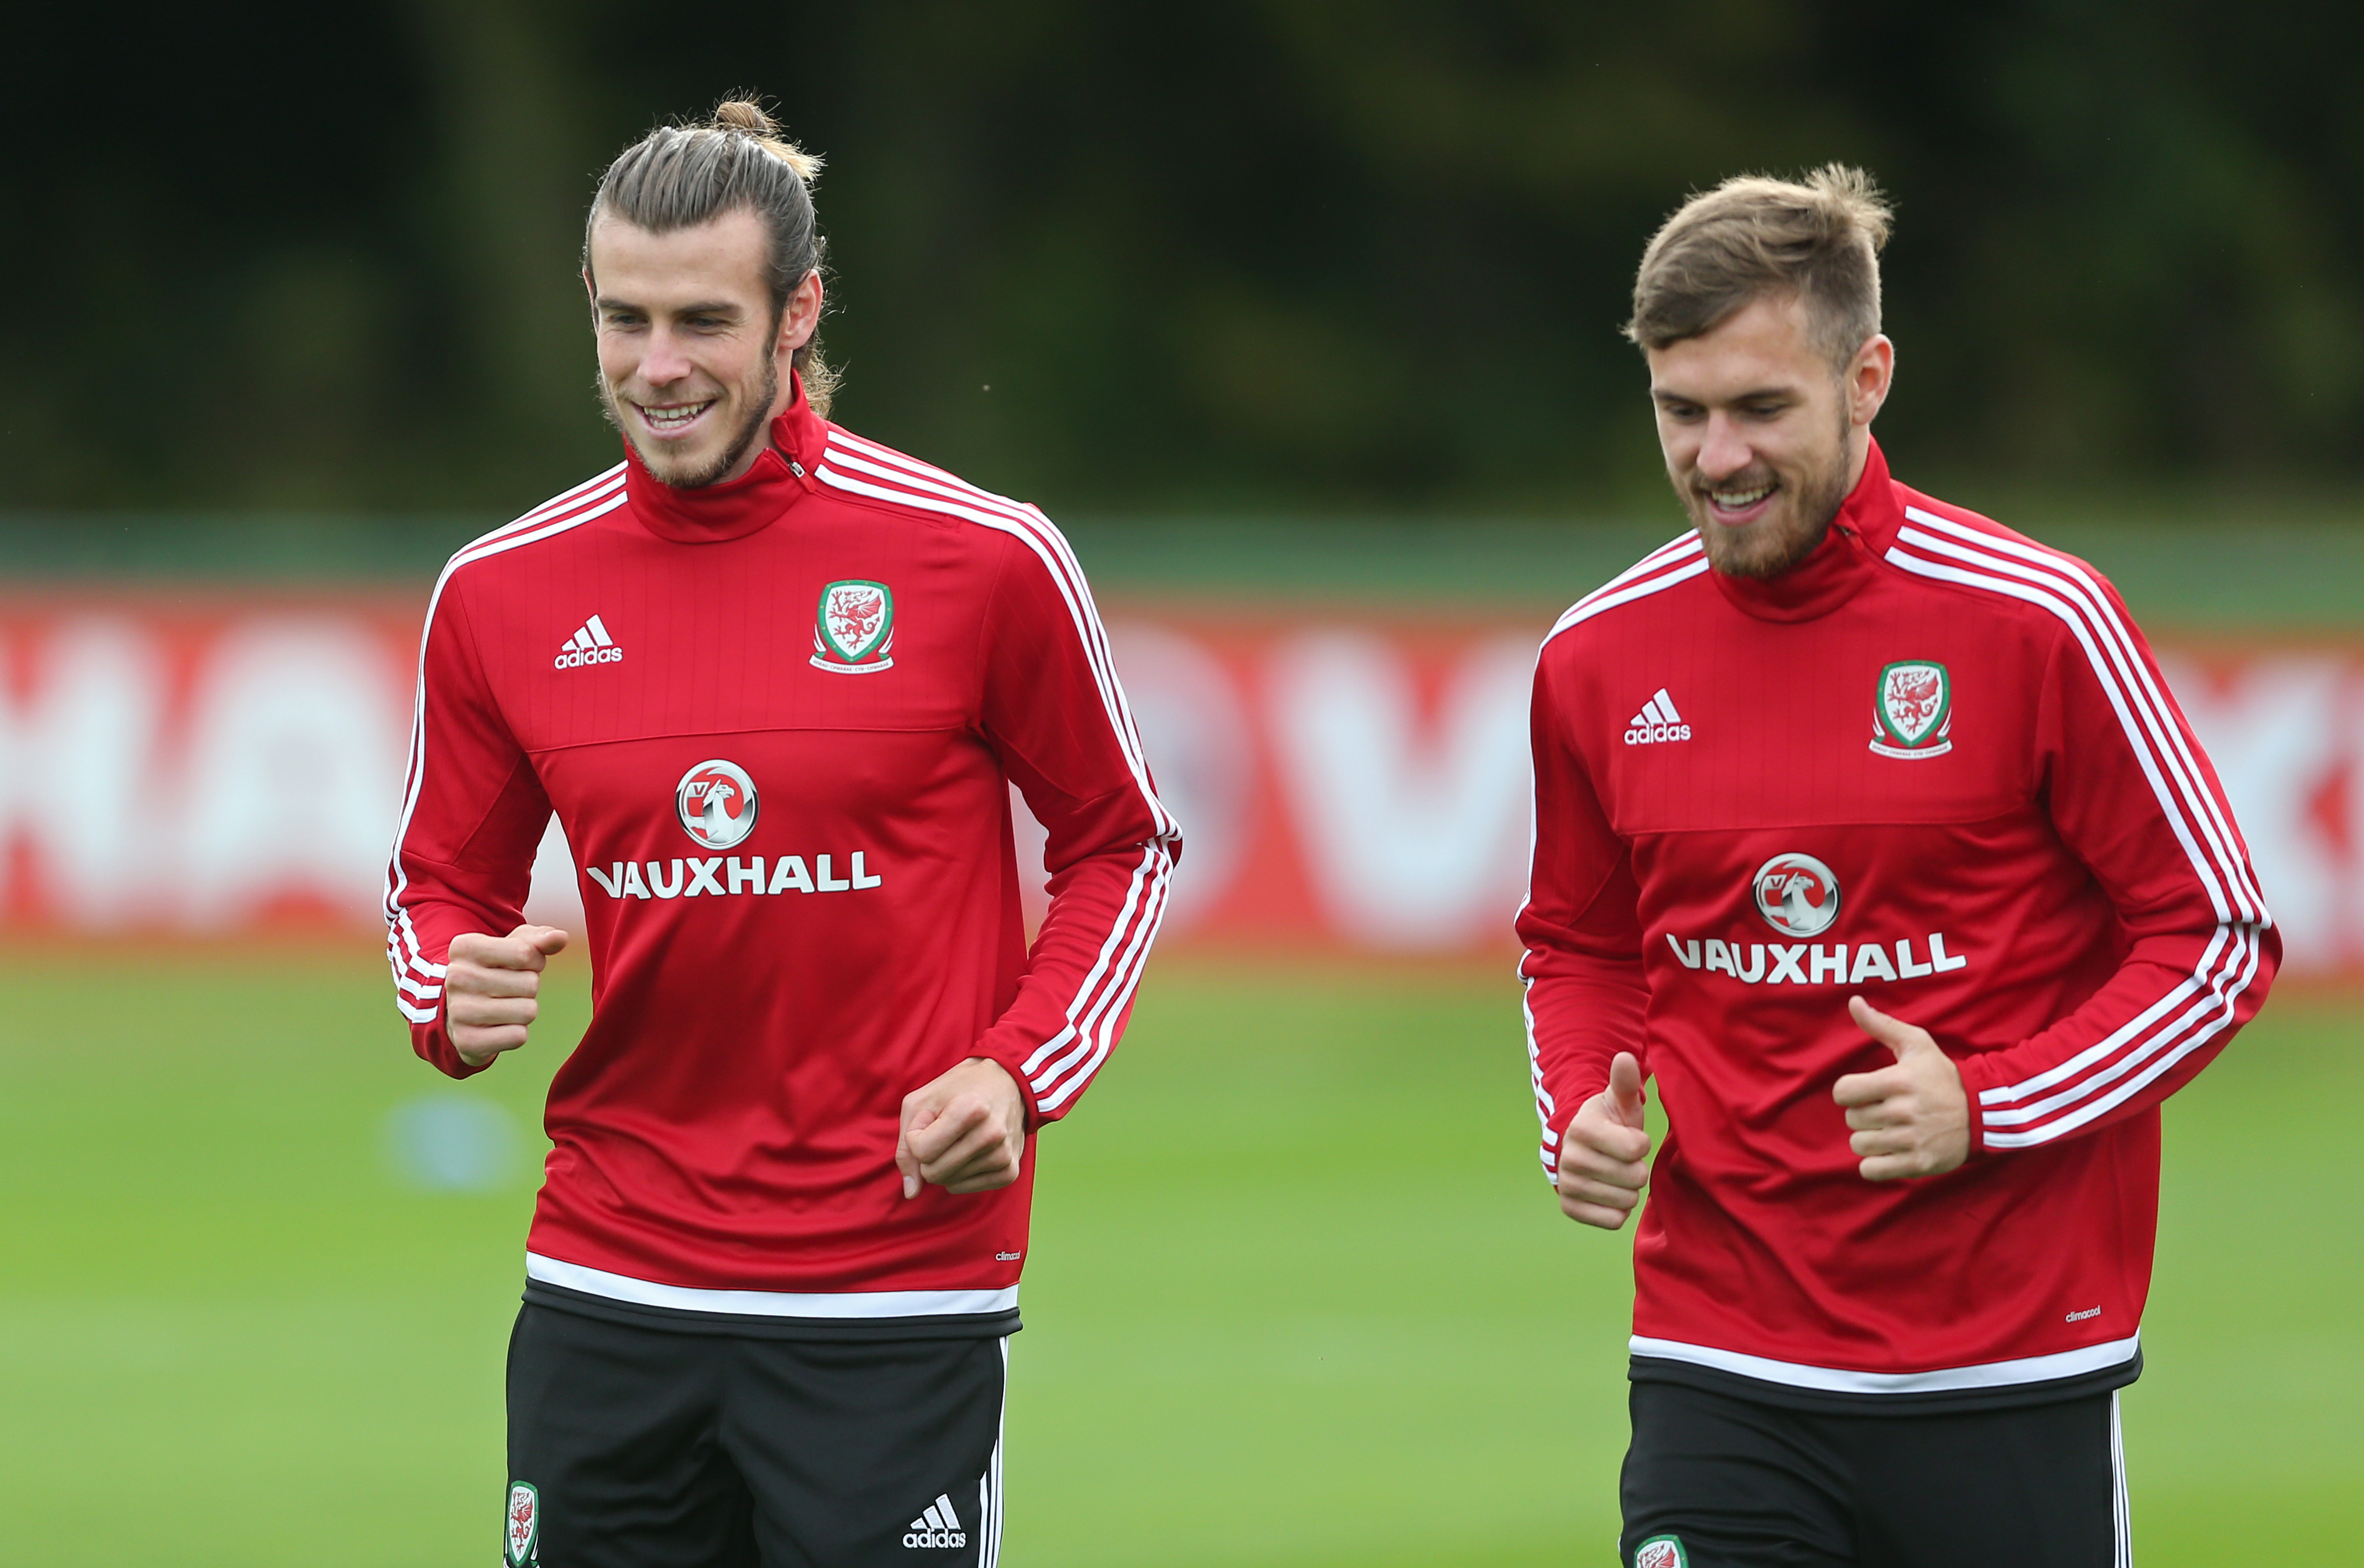 Football - Wales Training - The Vale Resort, Hensol, Vale of Glamorgan, Wales - 6/10/15nWales' Gareth Bale and Aaron Ramsey during trainingnAction Images via Reuters / Matthew ChildsnLivepicnEDITORIAL USE ONLY.